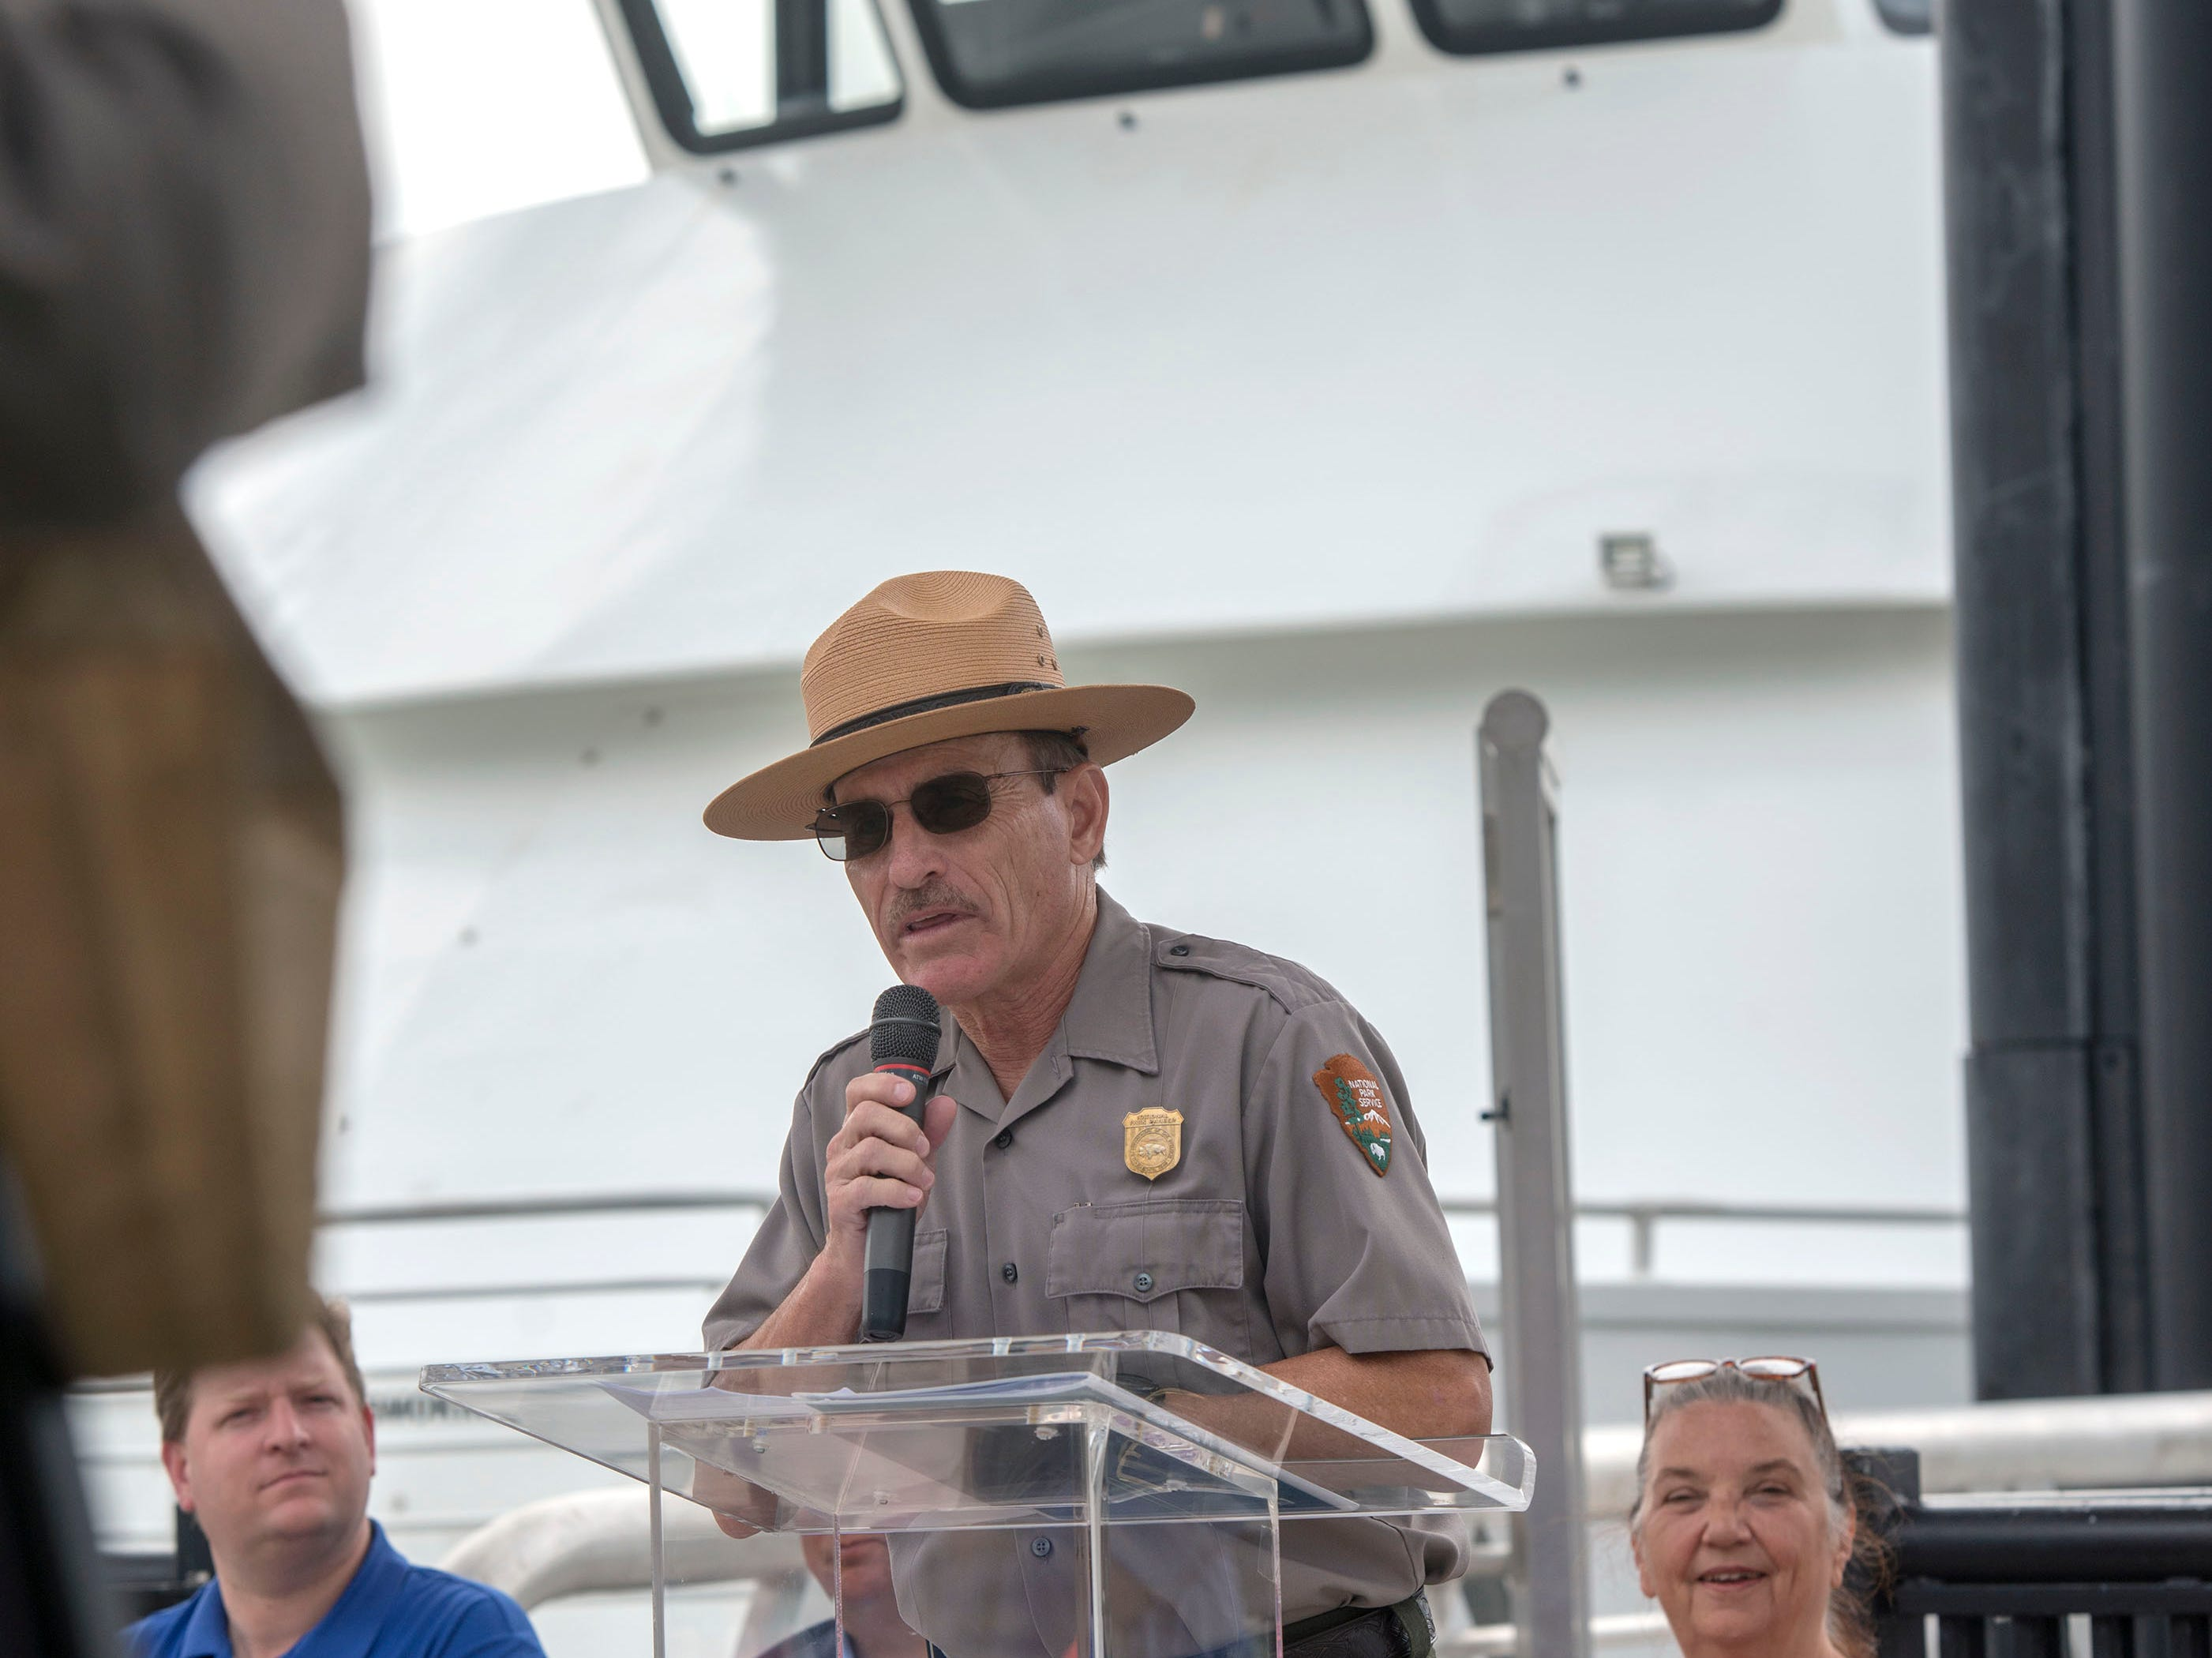 Dan Brown, superintendent with the National Park Service, speaks during the City of Pensacola's Ferry Terminal Building Grand Opening and ribbon cutting Saturday, April 13, 2019.